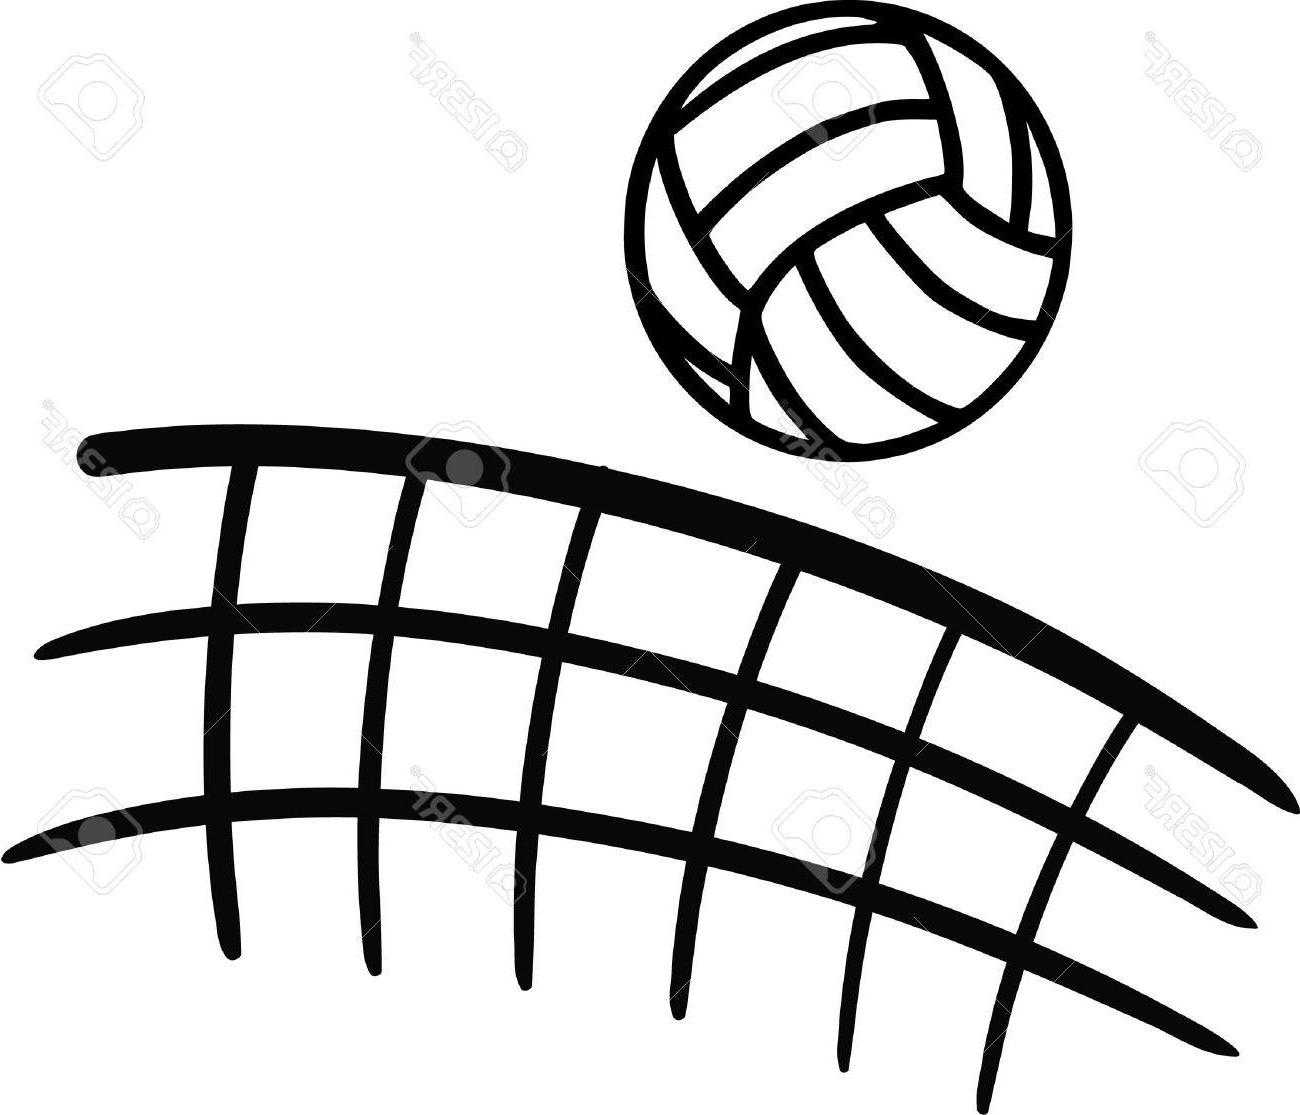 Volleyball with net clipart black and white library HD Volleyball Net Sketch Vector Pictures » Free Vector Art ... black and white library